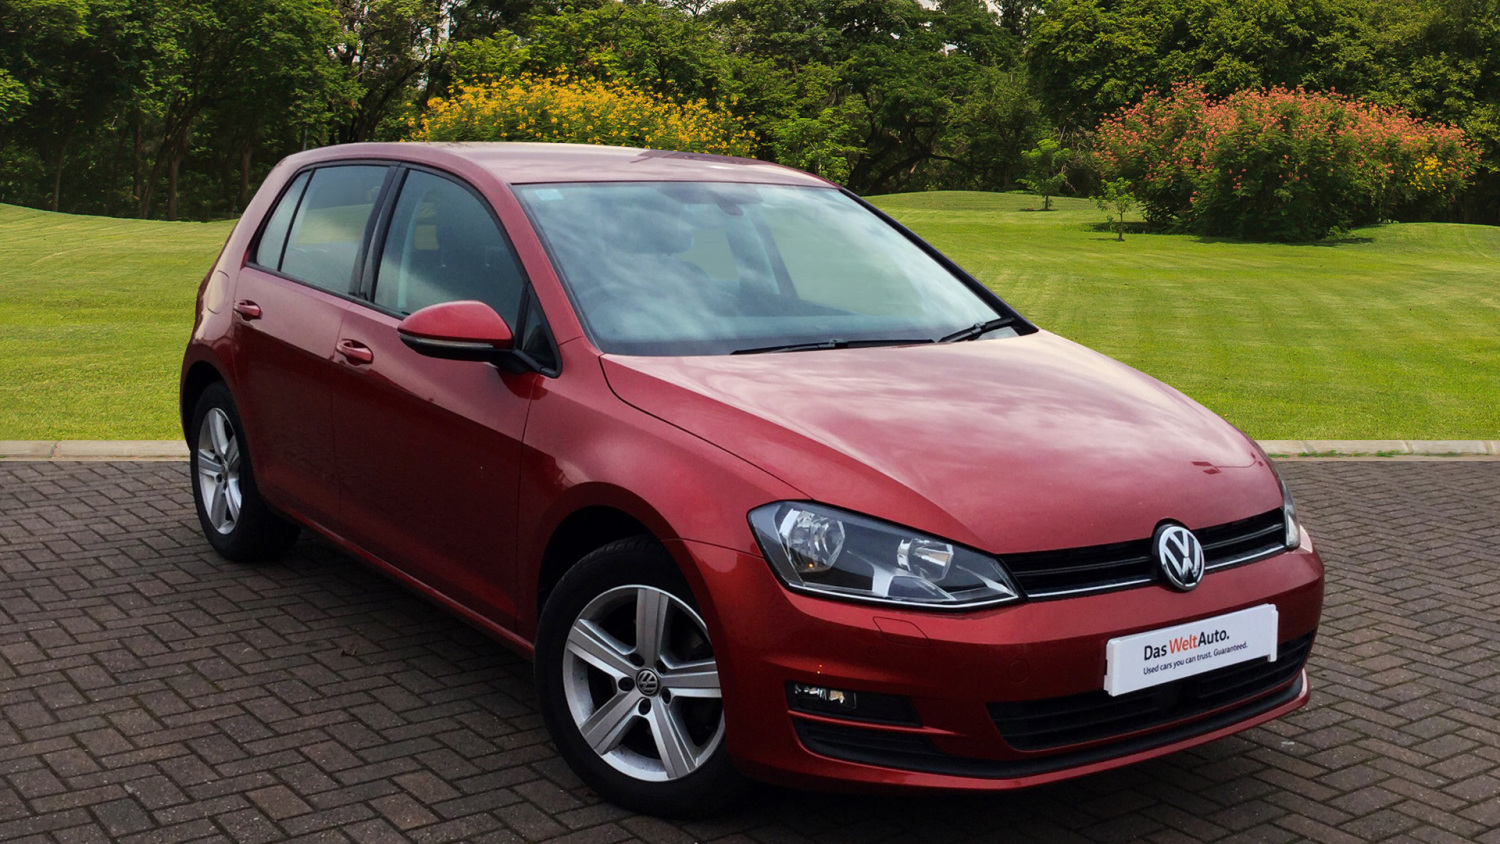 used volkswagen golf 1 4 tsi 125 match edition 5dr petrol hatchback for sale bristol street motors. Black Bedroom Furniture Sets. Home Design Ideas